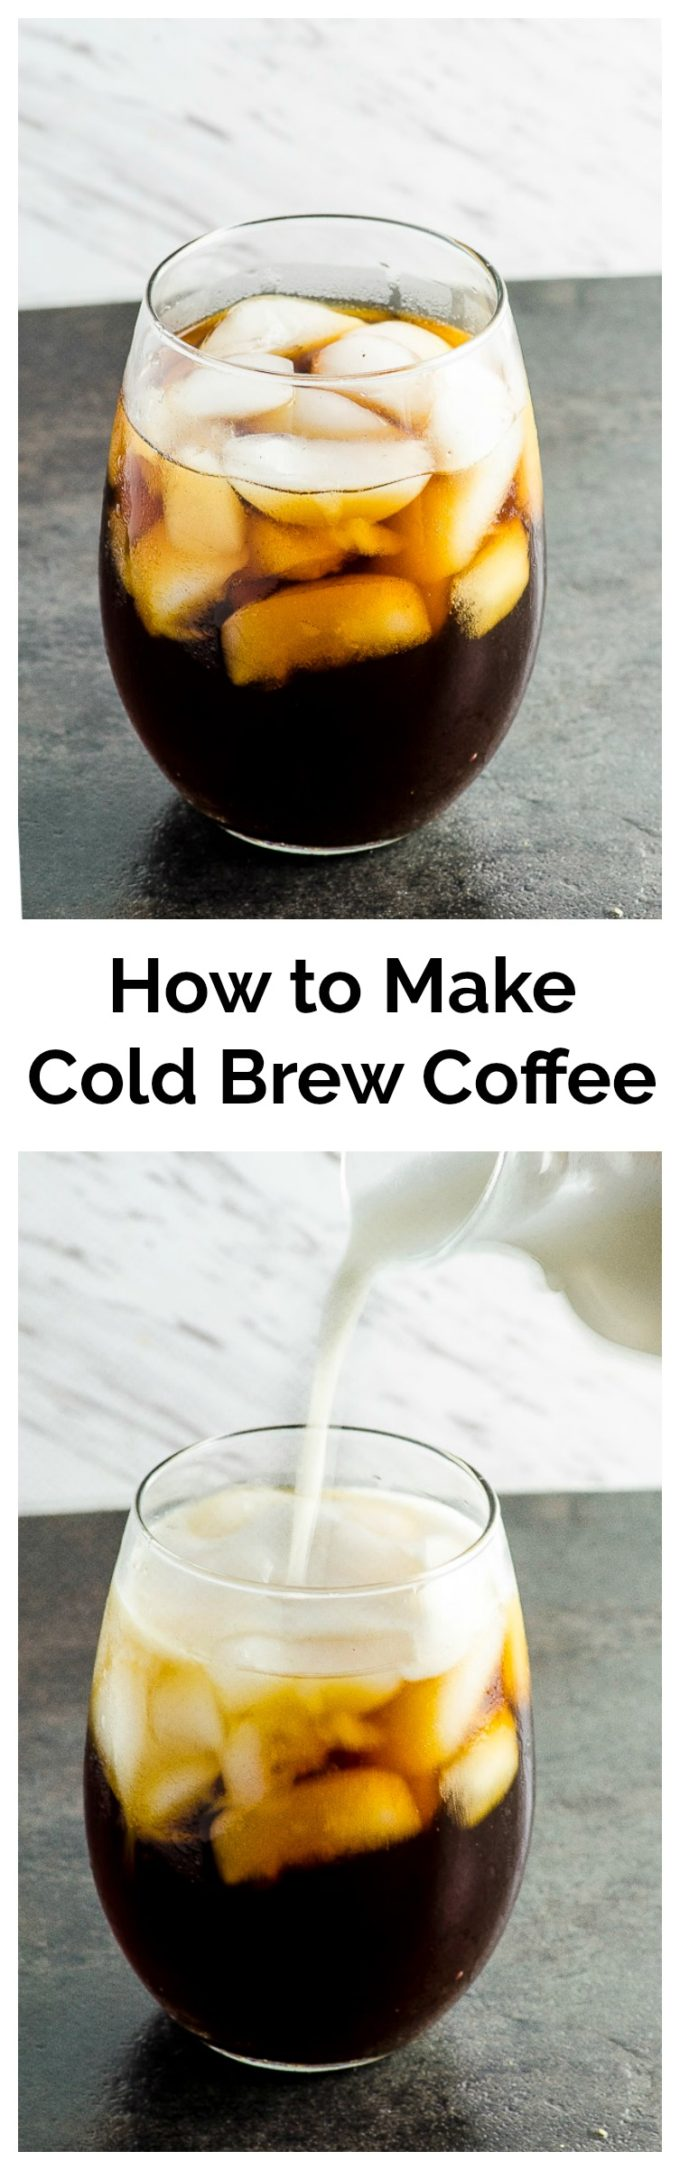 How to make Cold brew. You've probably seen cold brew coffee pop up all over the place lately. But, what exactly is cold brew coffee? To put it simply, it's coffee that is brewed in cold, not hot, water. The result is a smooth, less acidic coffee where its true flavor shines without being bitter... Click to read more